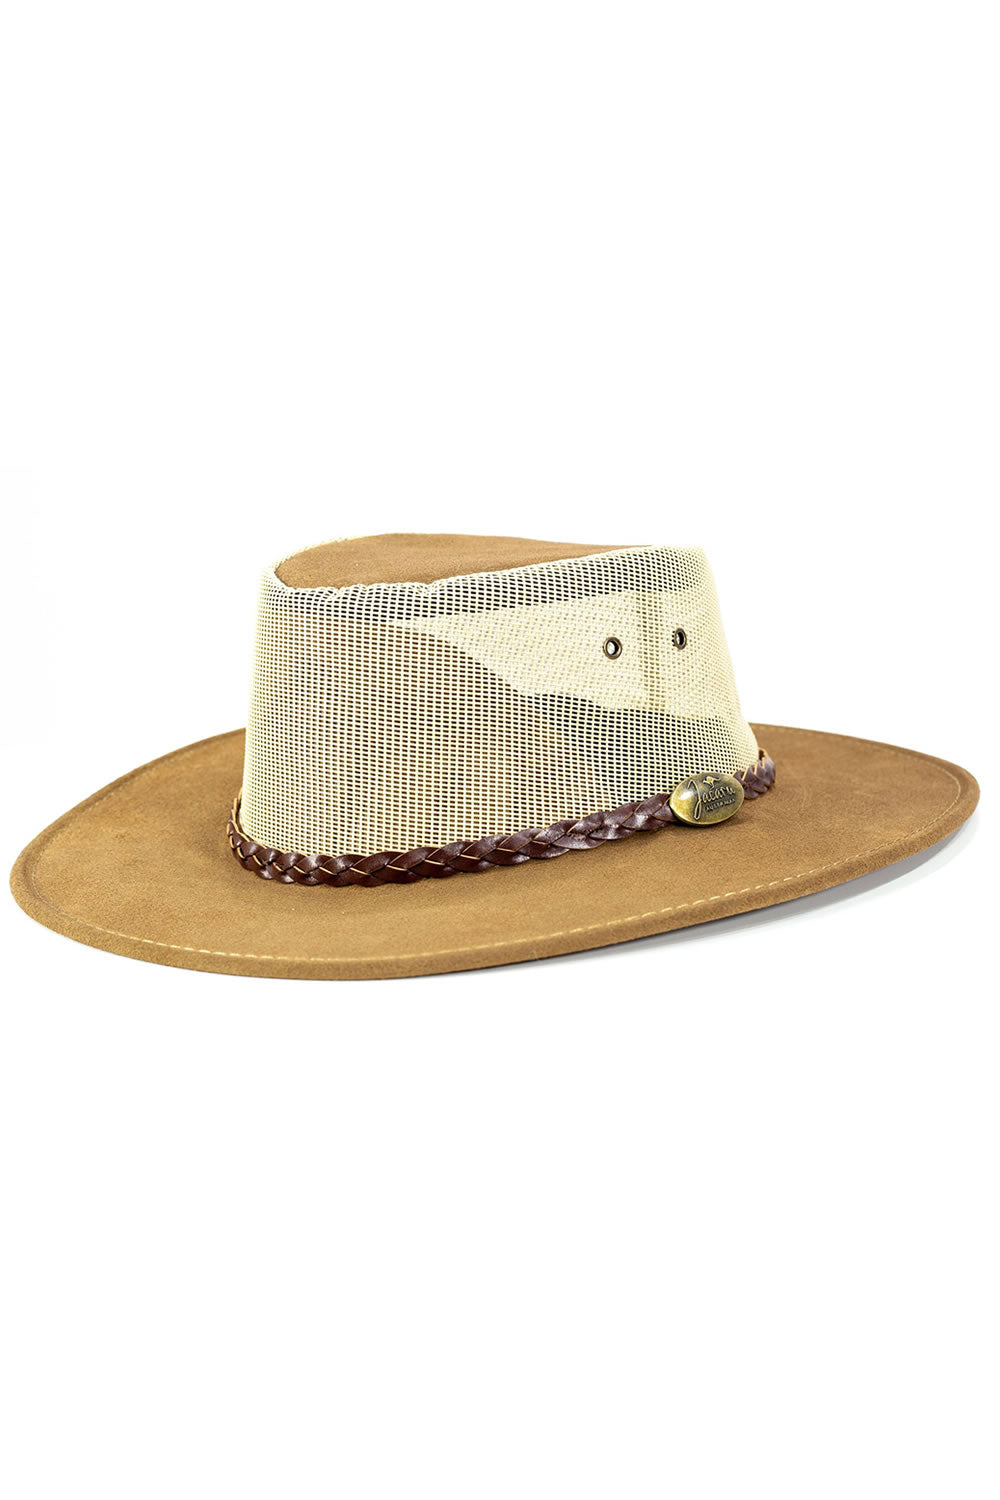 Jacaru Summer Breeze Hat